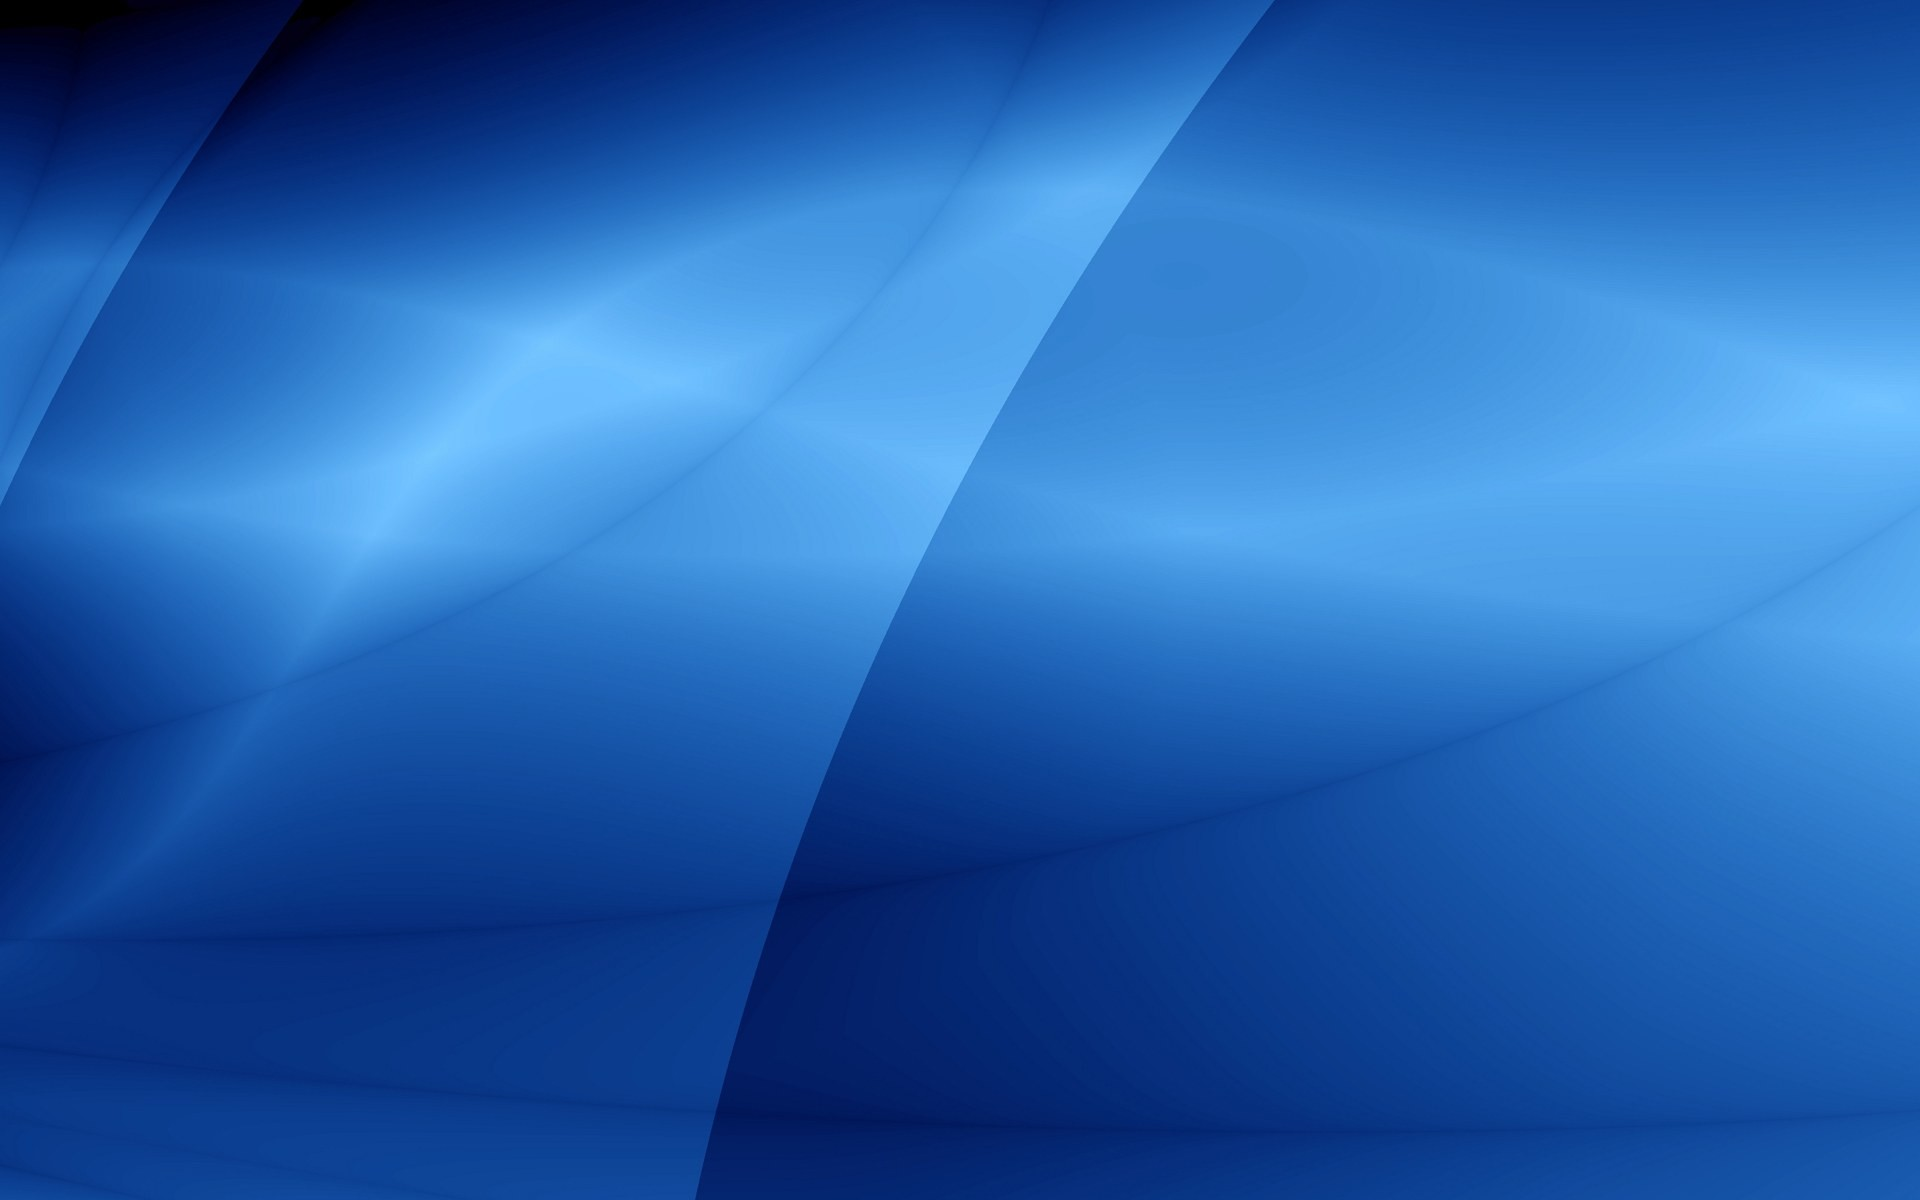 Blue Abstract Background 2042 Hd Wallpapers in Abstract – Imagesci.com